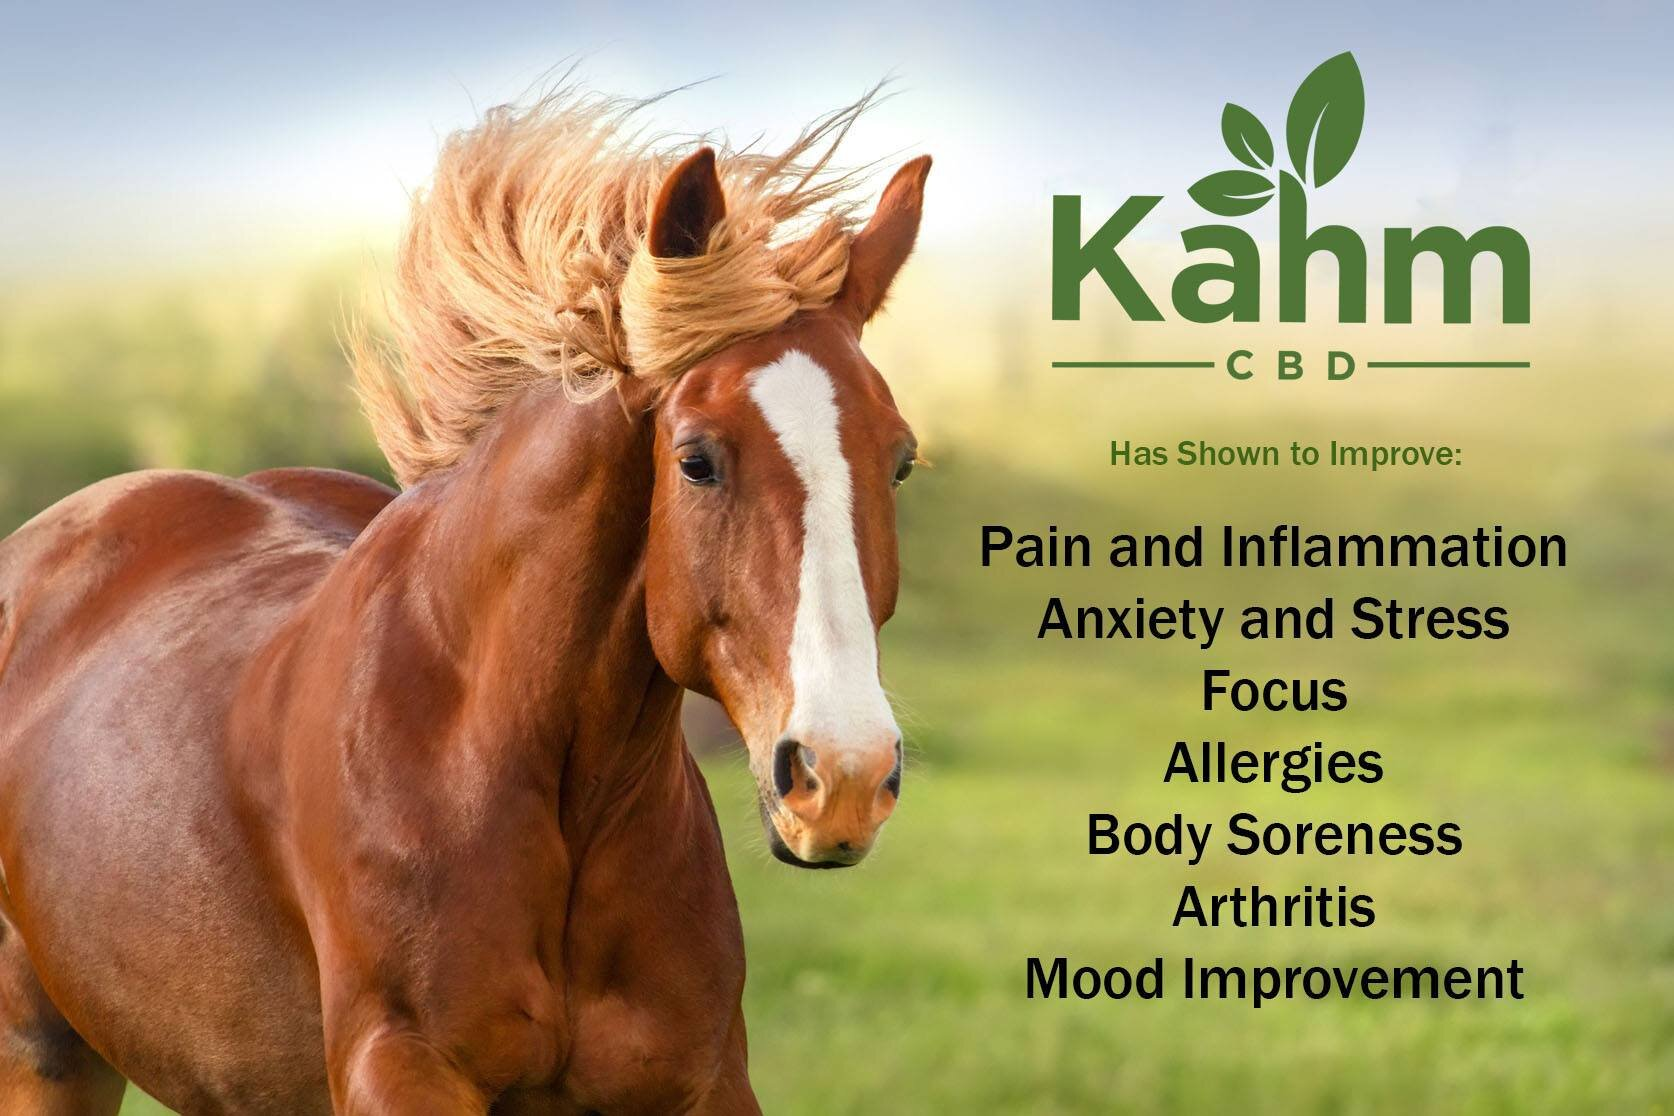 """Kahm CDB - Use checkout code """"MWH"""" at KahmCBD.com to get 10% off of your order!We're BIG fans of CBD! We use it everyday on ourselves, our dogs, and our horses. We LOVE Kahm CBD! Everything is 3rd party tested and all hemp and CBD extracts are hand selected from farms in the USA. We're partial to the oil for ourselves and our dogs. Our horses get pellets daily and oil or a """"B Cool Bite"""" when at a race. We've seen great results! Most of all in our older arthritic dogs and in all of the horses! Click the link for more information and to order yours CBD today!"""